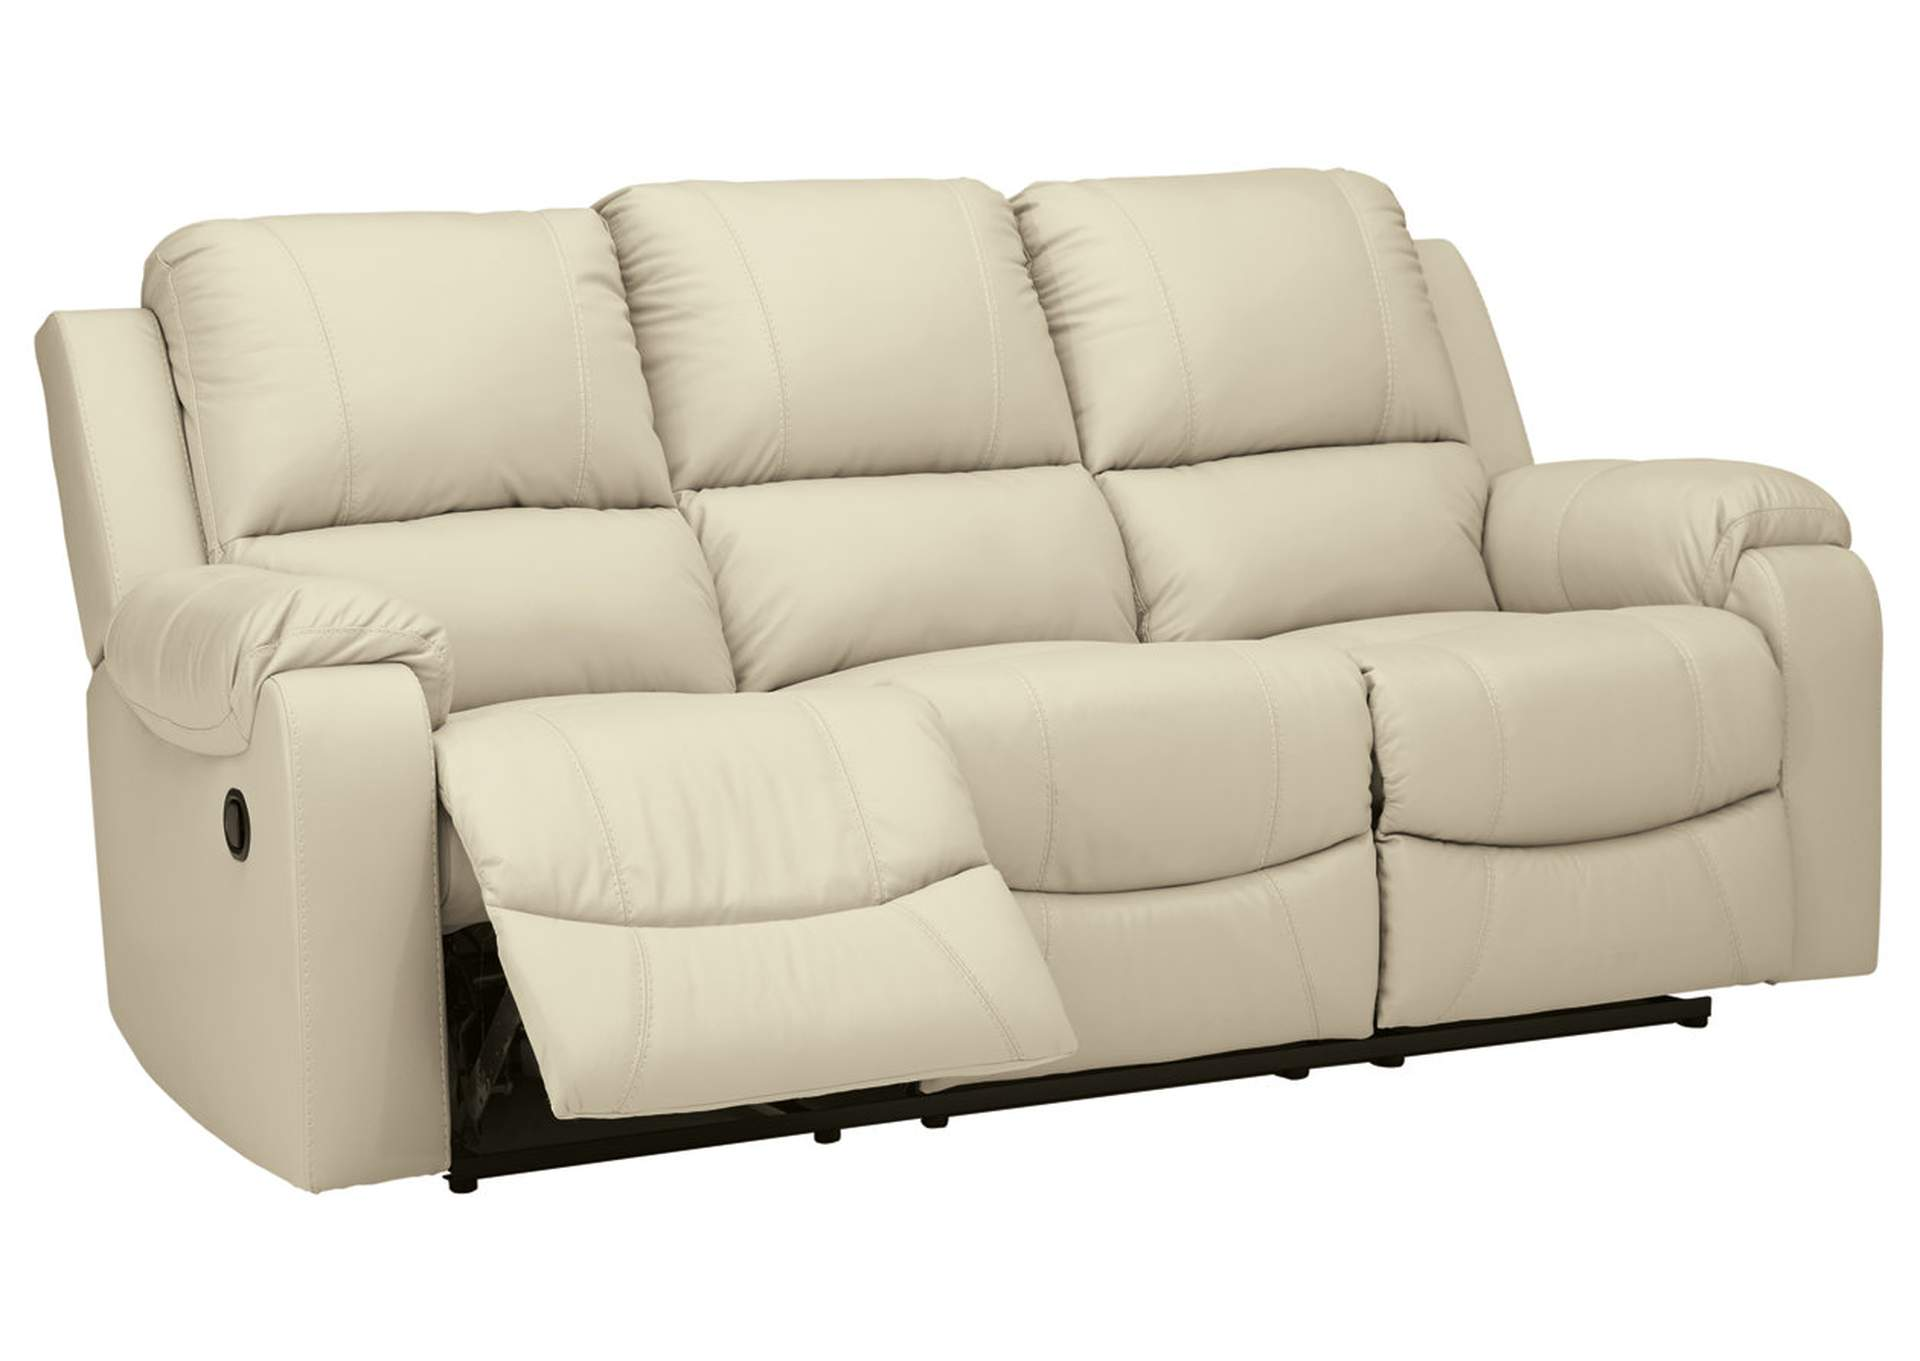 Rackingburg Cream Reclining Sofa,Signature Design By Ashley